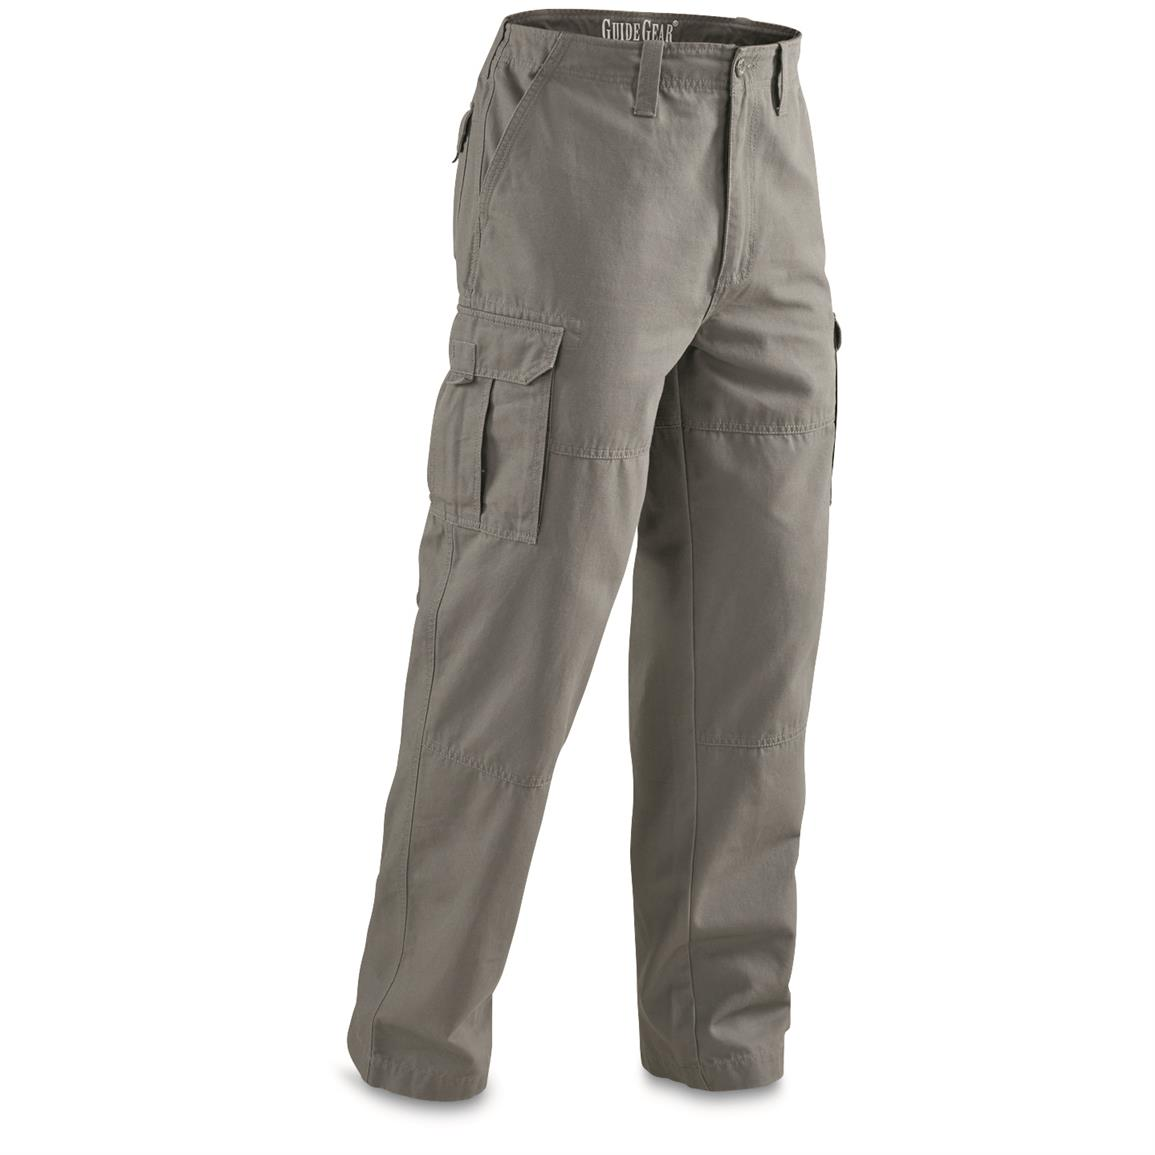 Guide Gear Men's Outdoor Cargo Pants, Gray